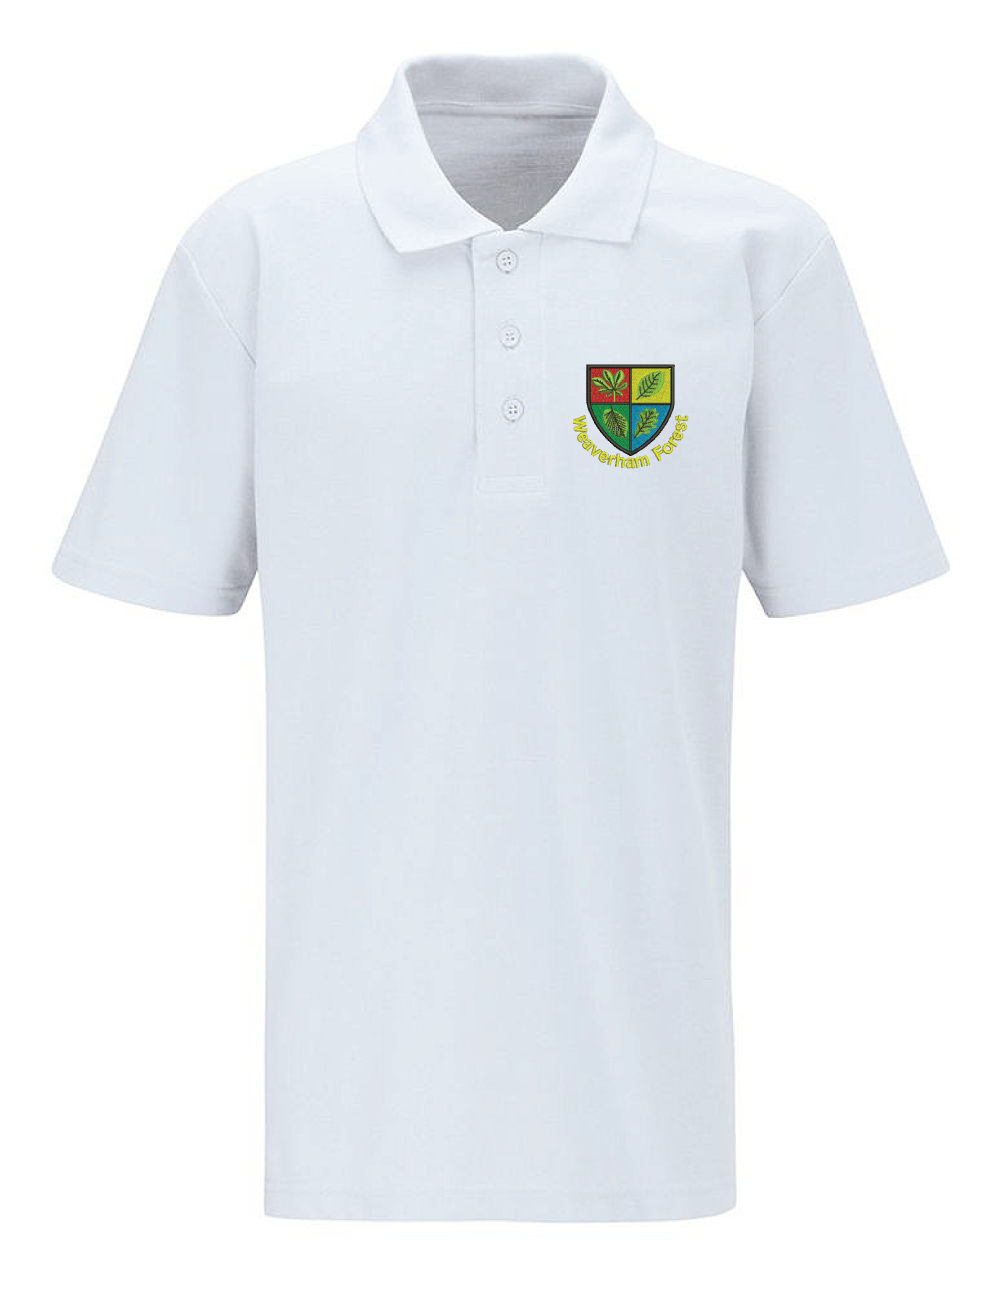 Weaverham Forest Primary School Polo Shirt